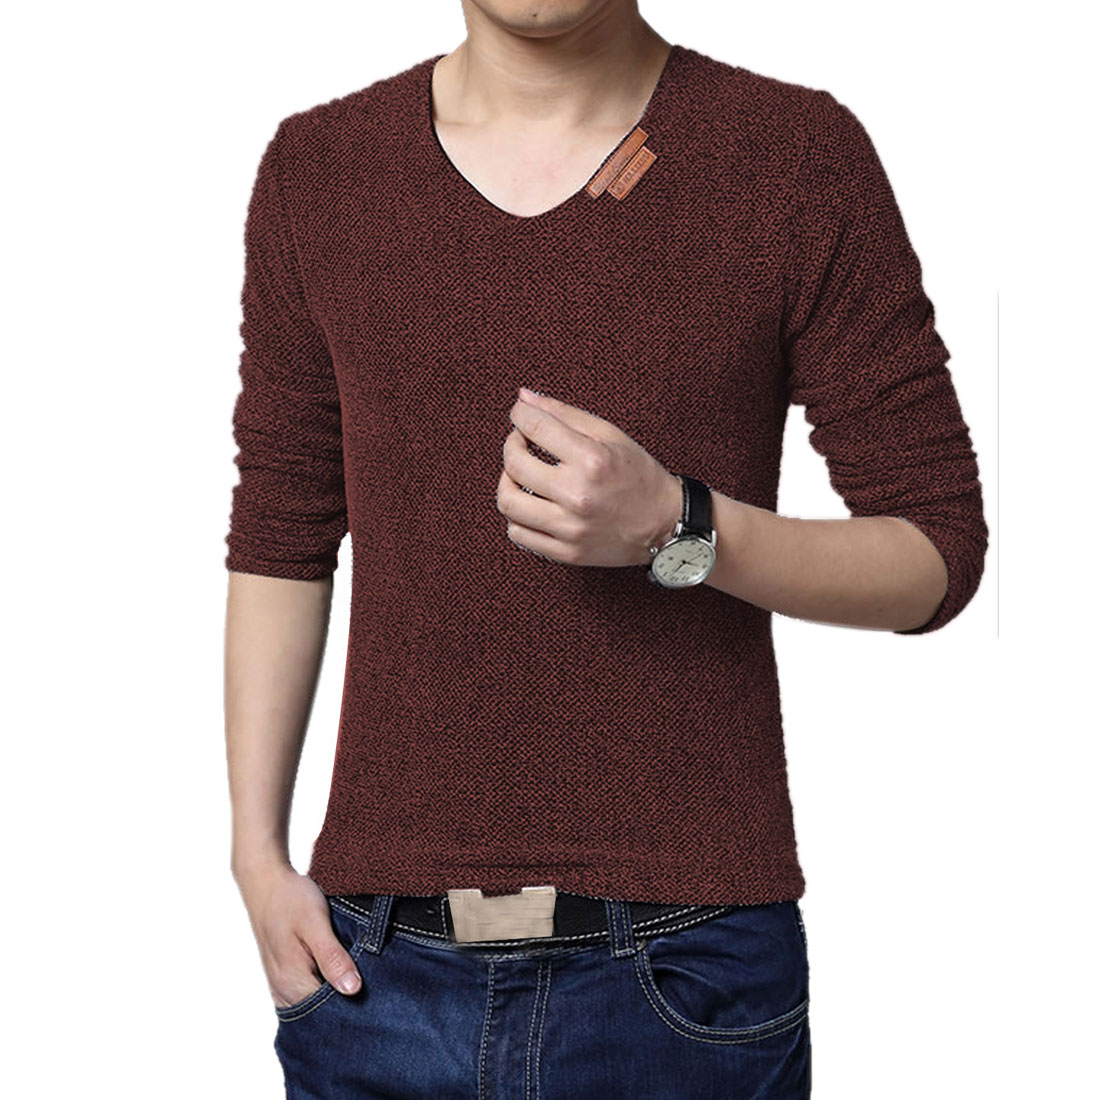 Azzuro Men's Long Sleeve Knitted Panel Fleece Lined T-Shirt (Size M / 38)